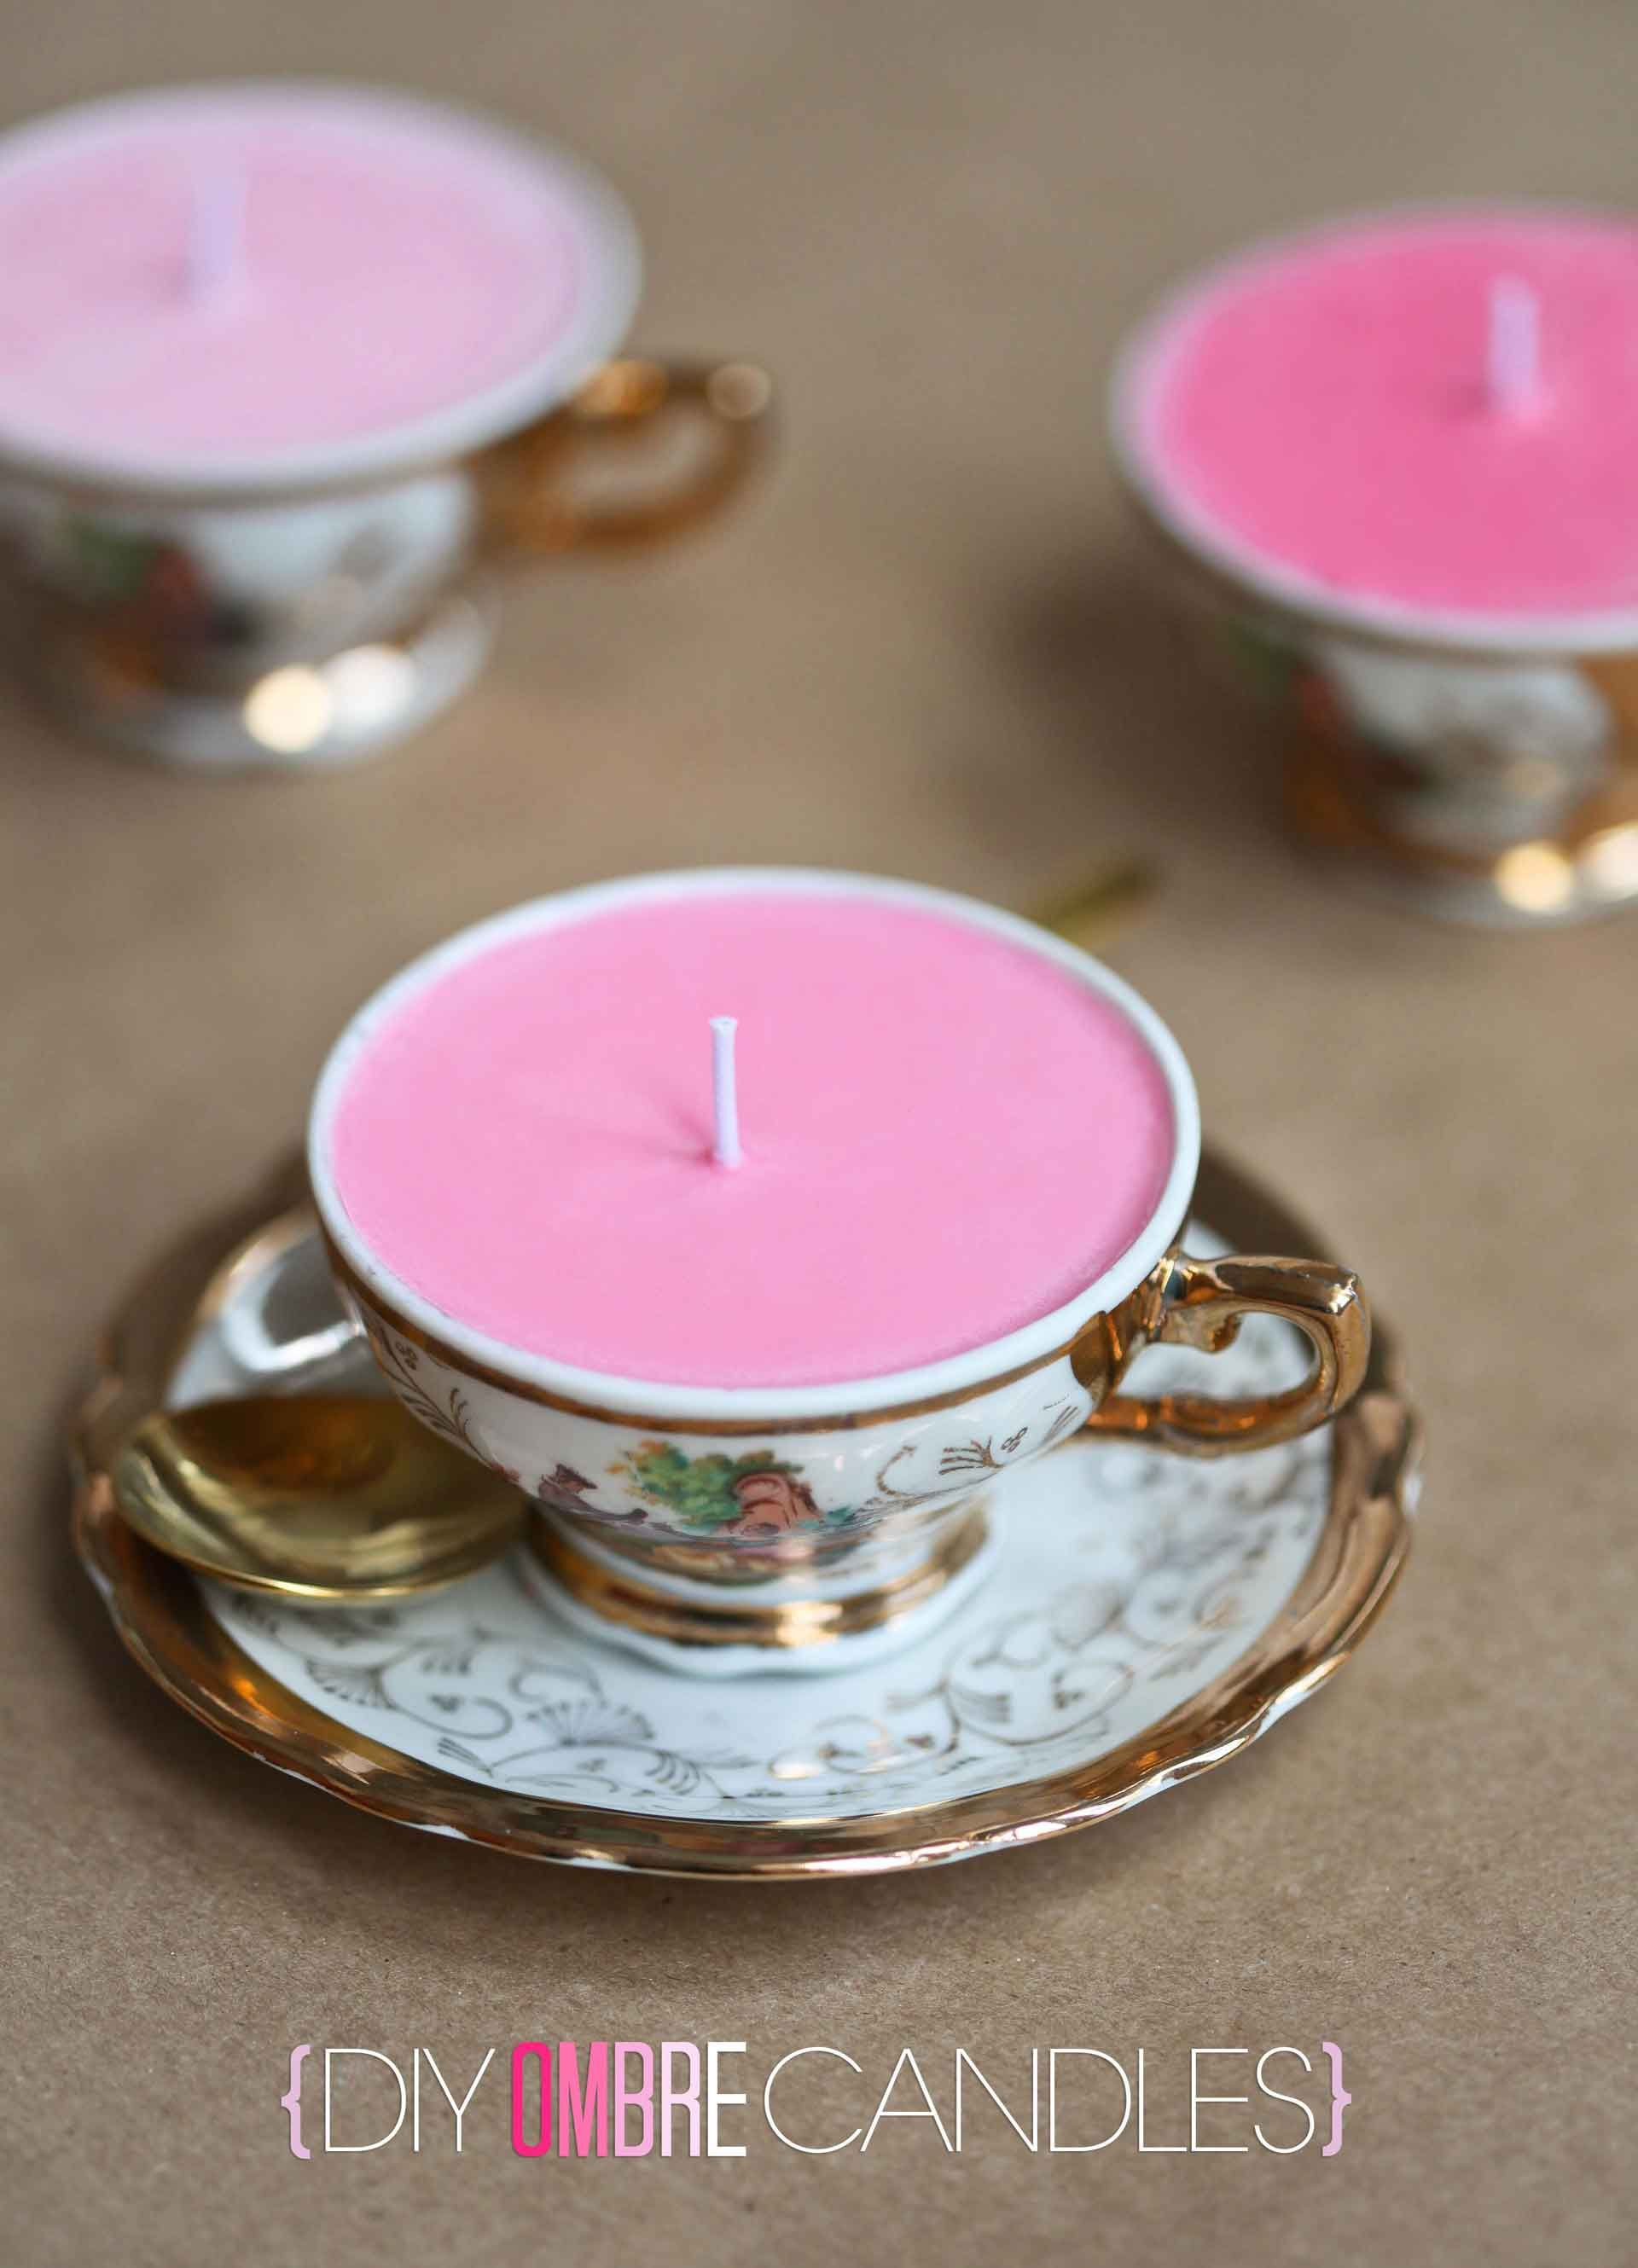 How to Make Candles in Teacups | DIY CANDLES | Pinterest | Diy ombre ...